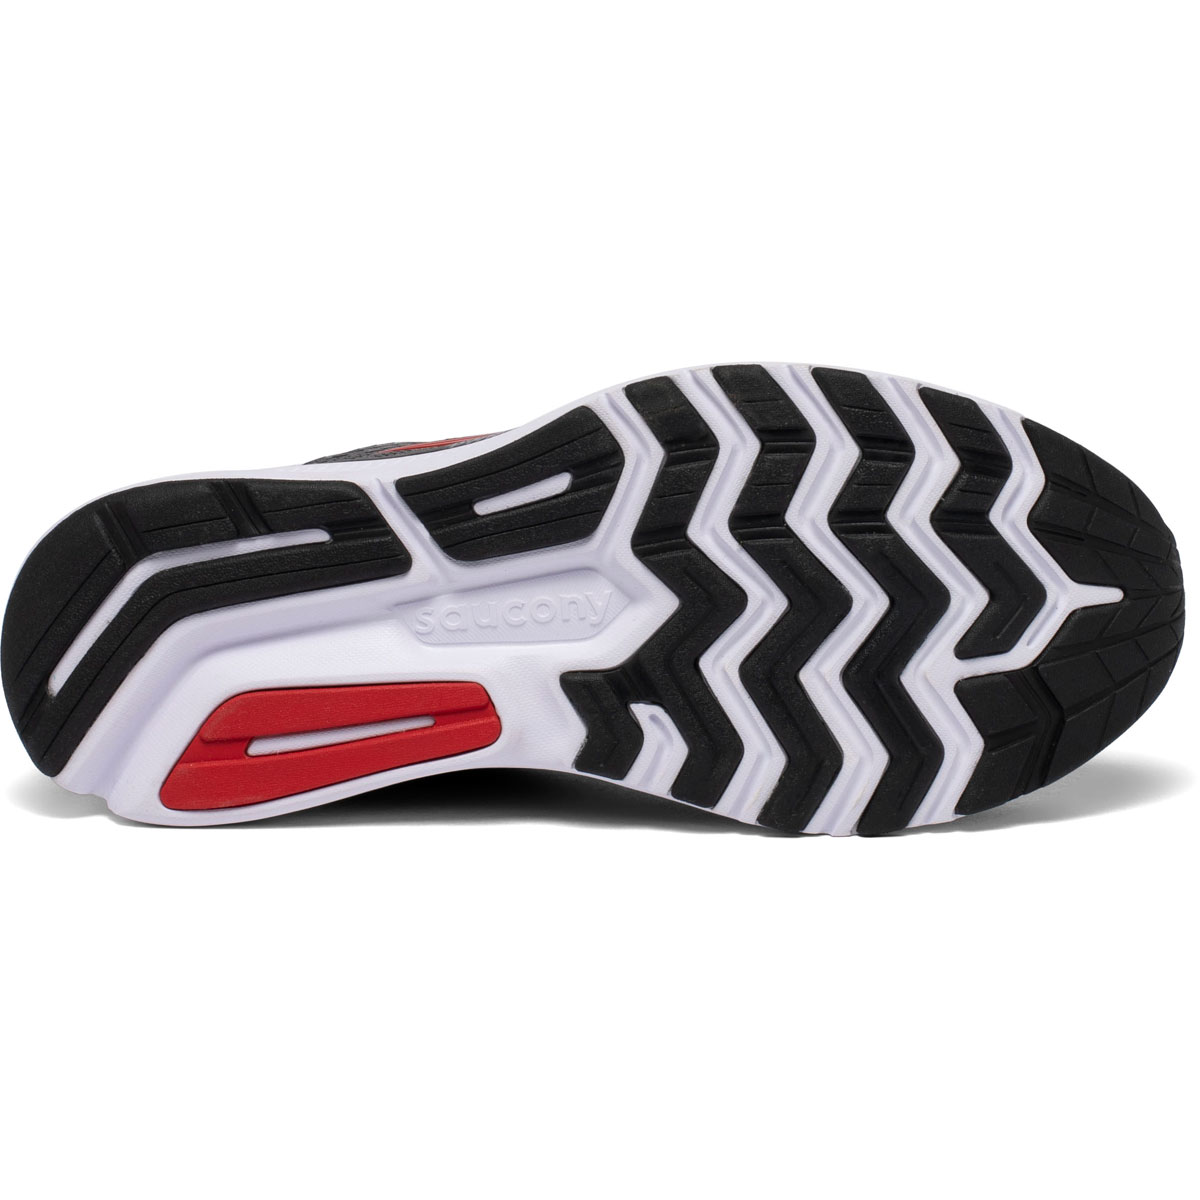 Men's Saucony Ride 13 Running Shoe - Color: Charcoal/Red - Size: 7 - Width: Regular, Charcoal/Red, large, image 4